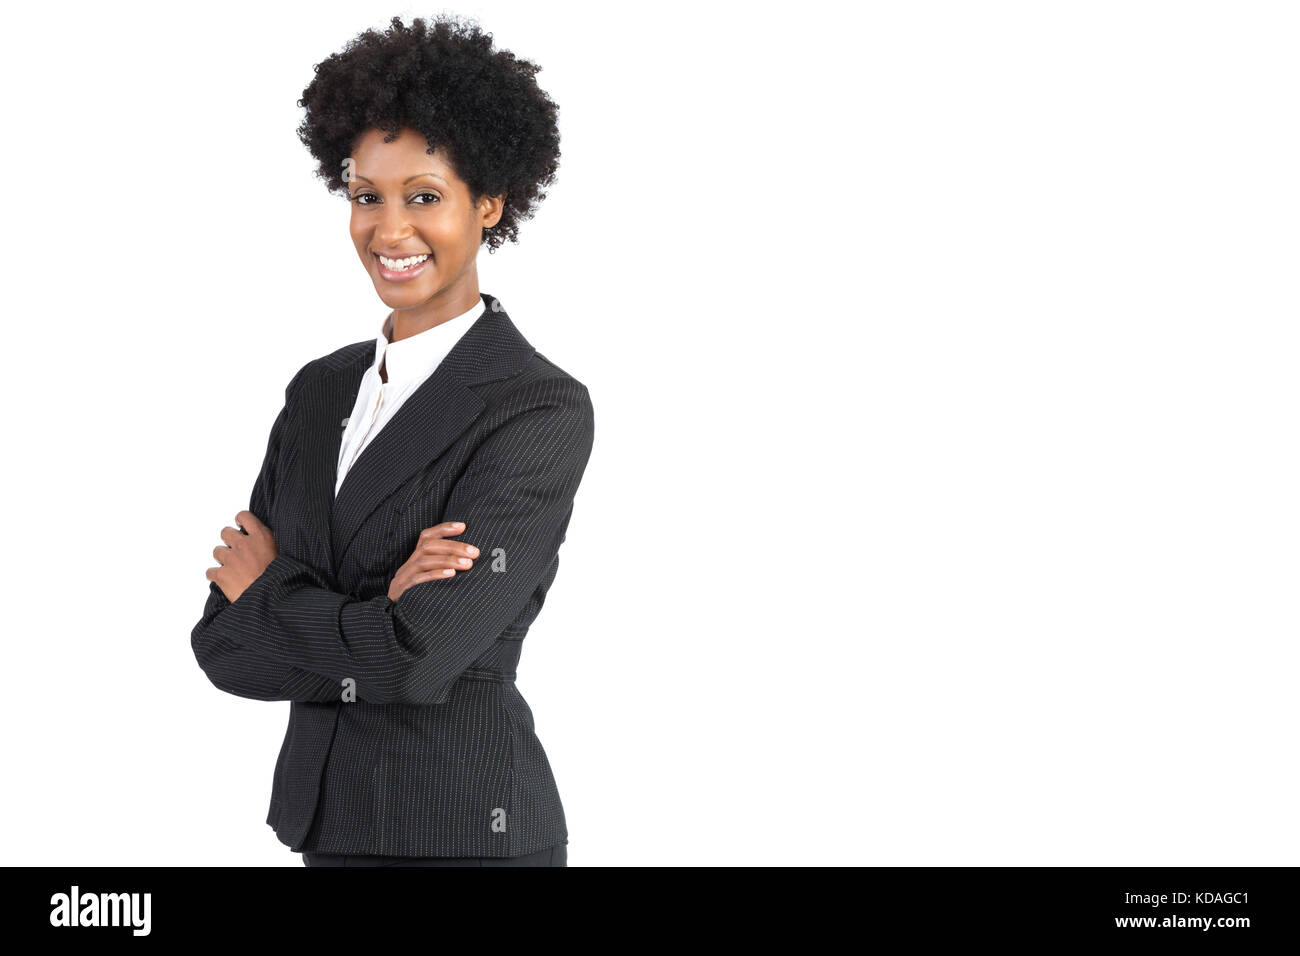 Handsome African American business woman. - Stock Image